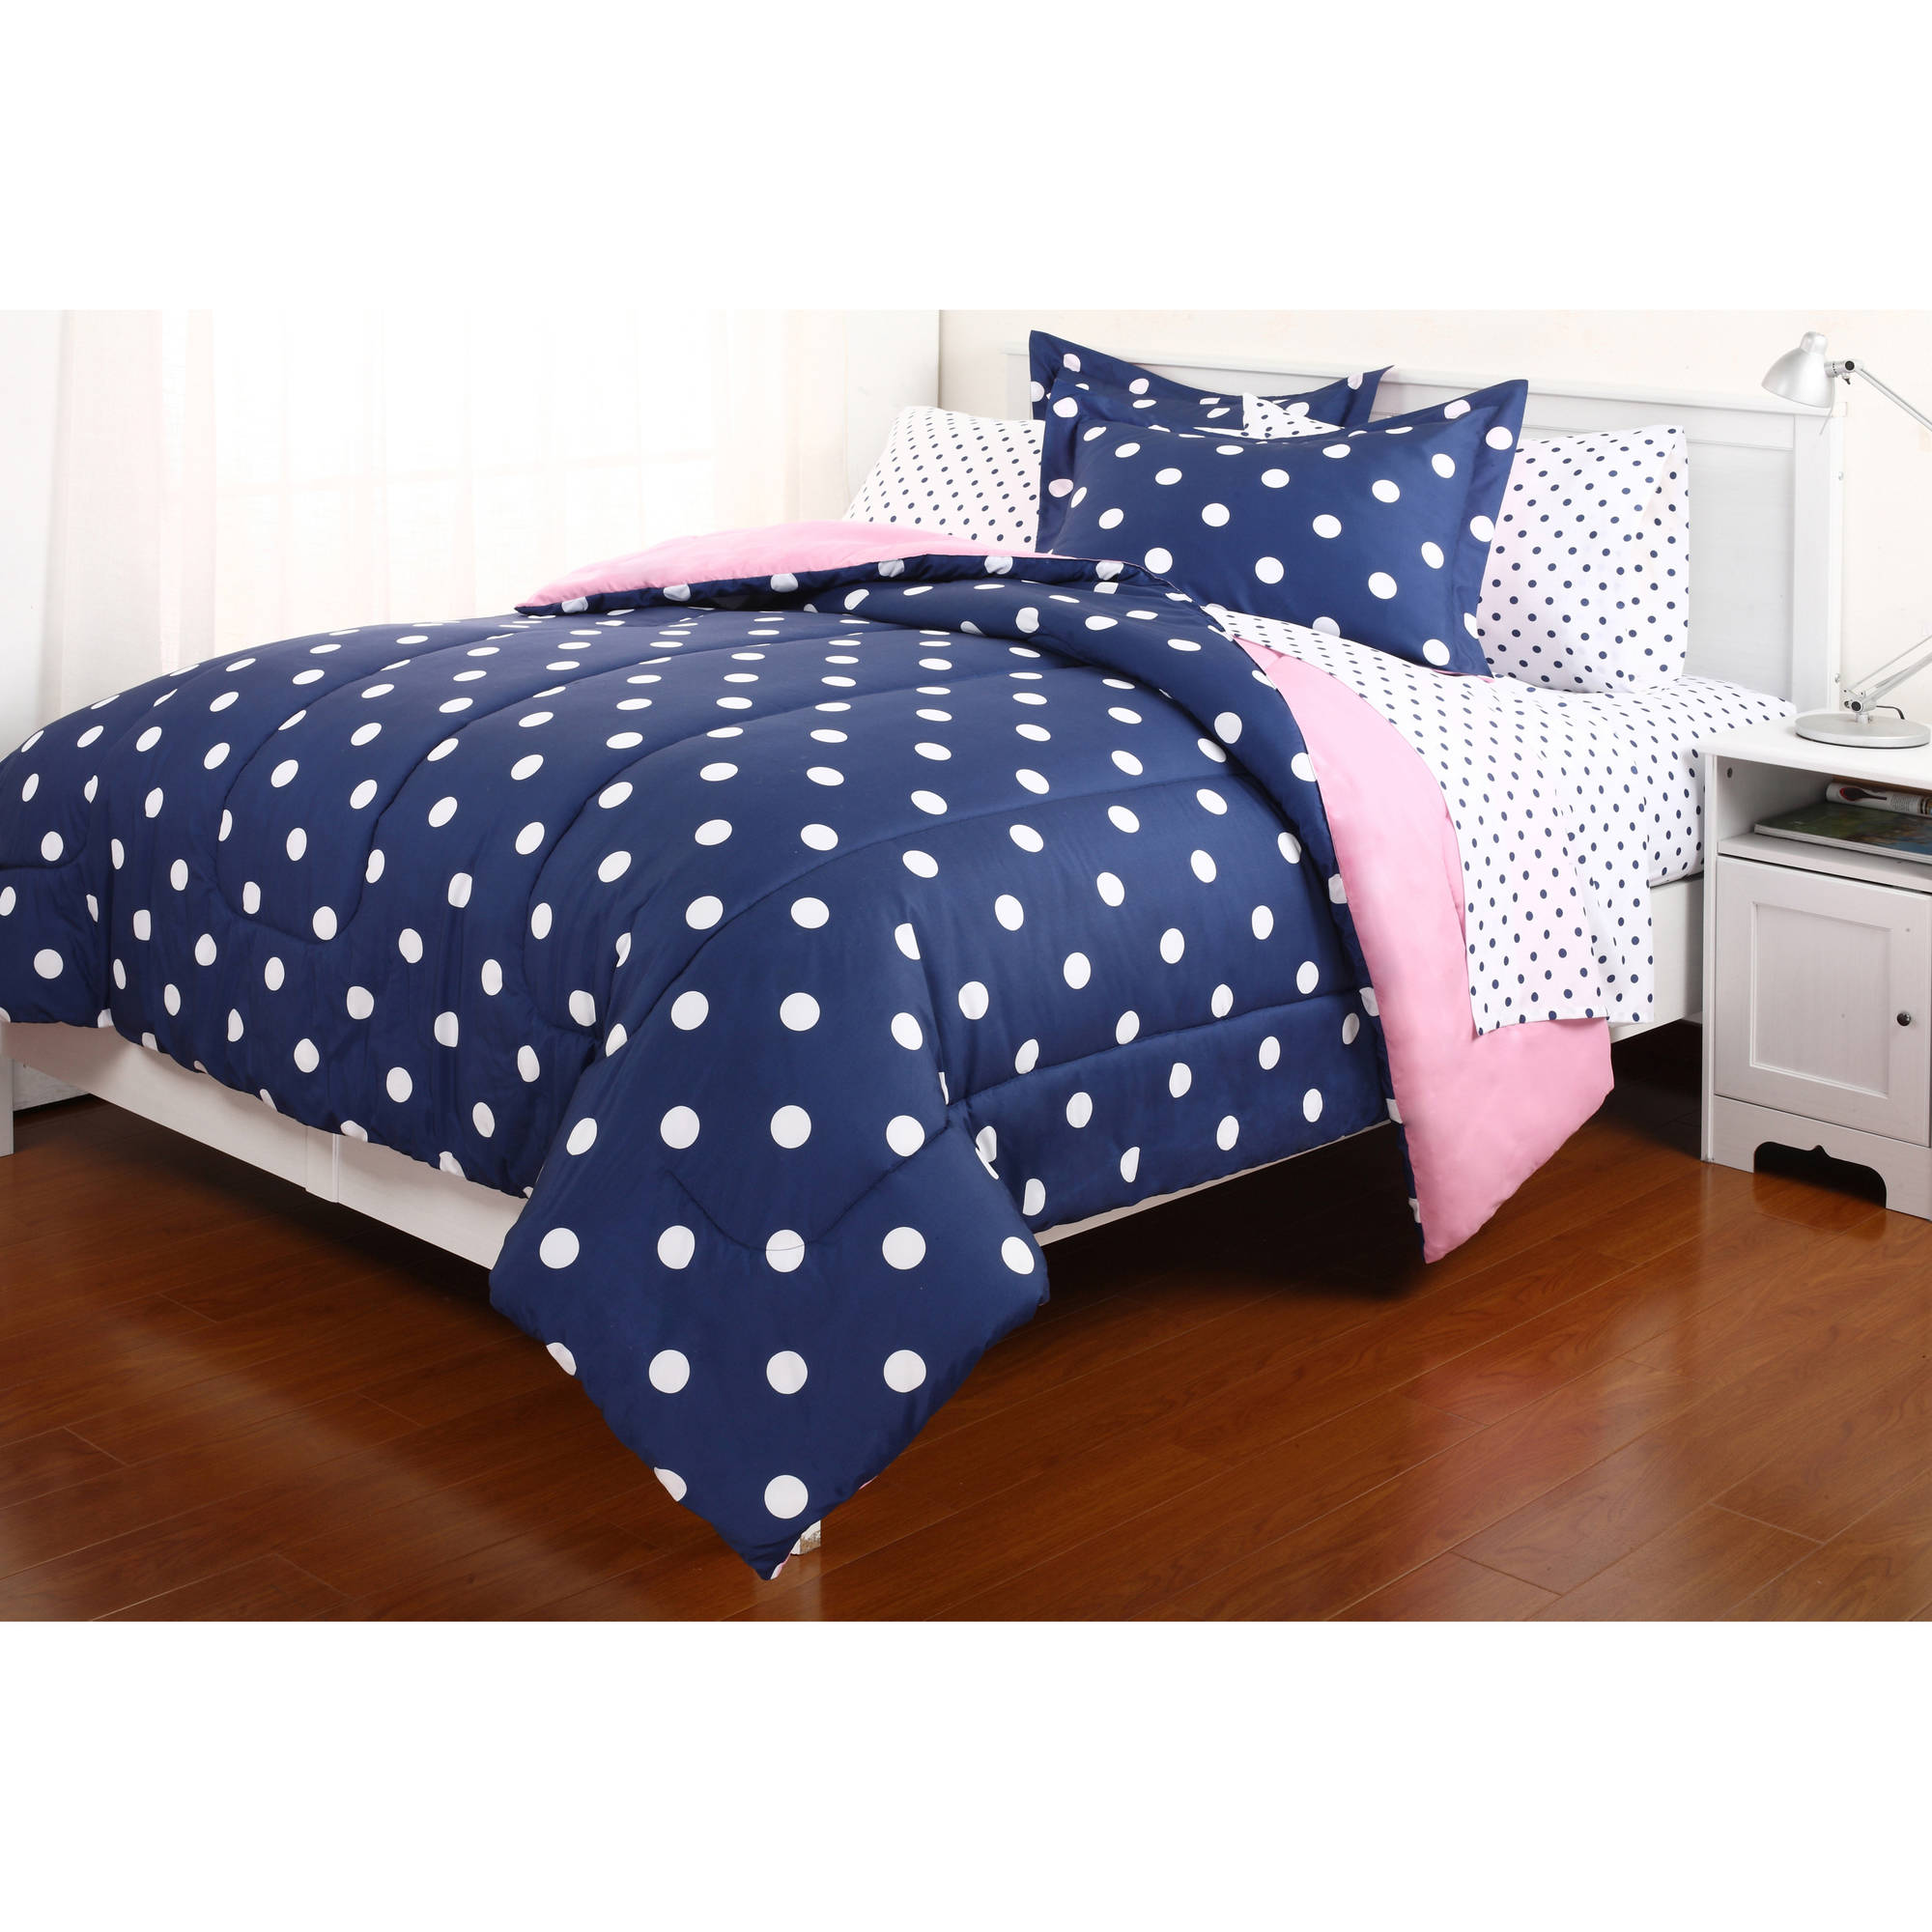 Bedding sets for teenage girls walmart - Bedding Sets For Teenage Girls Walmart 27